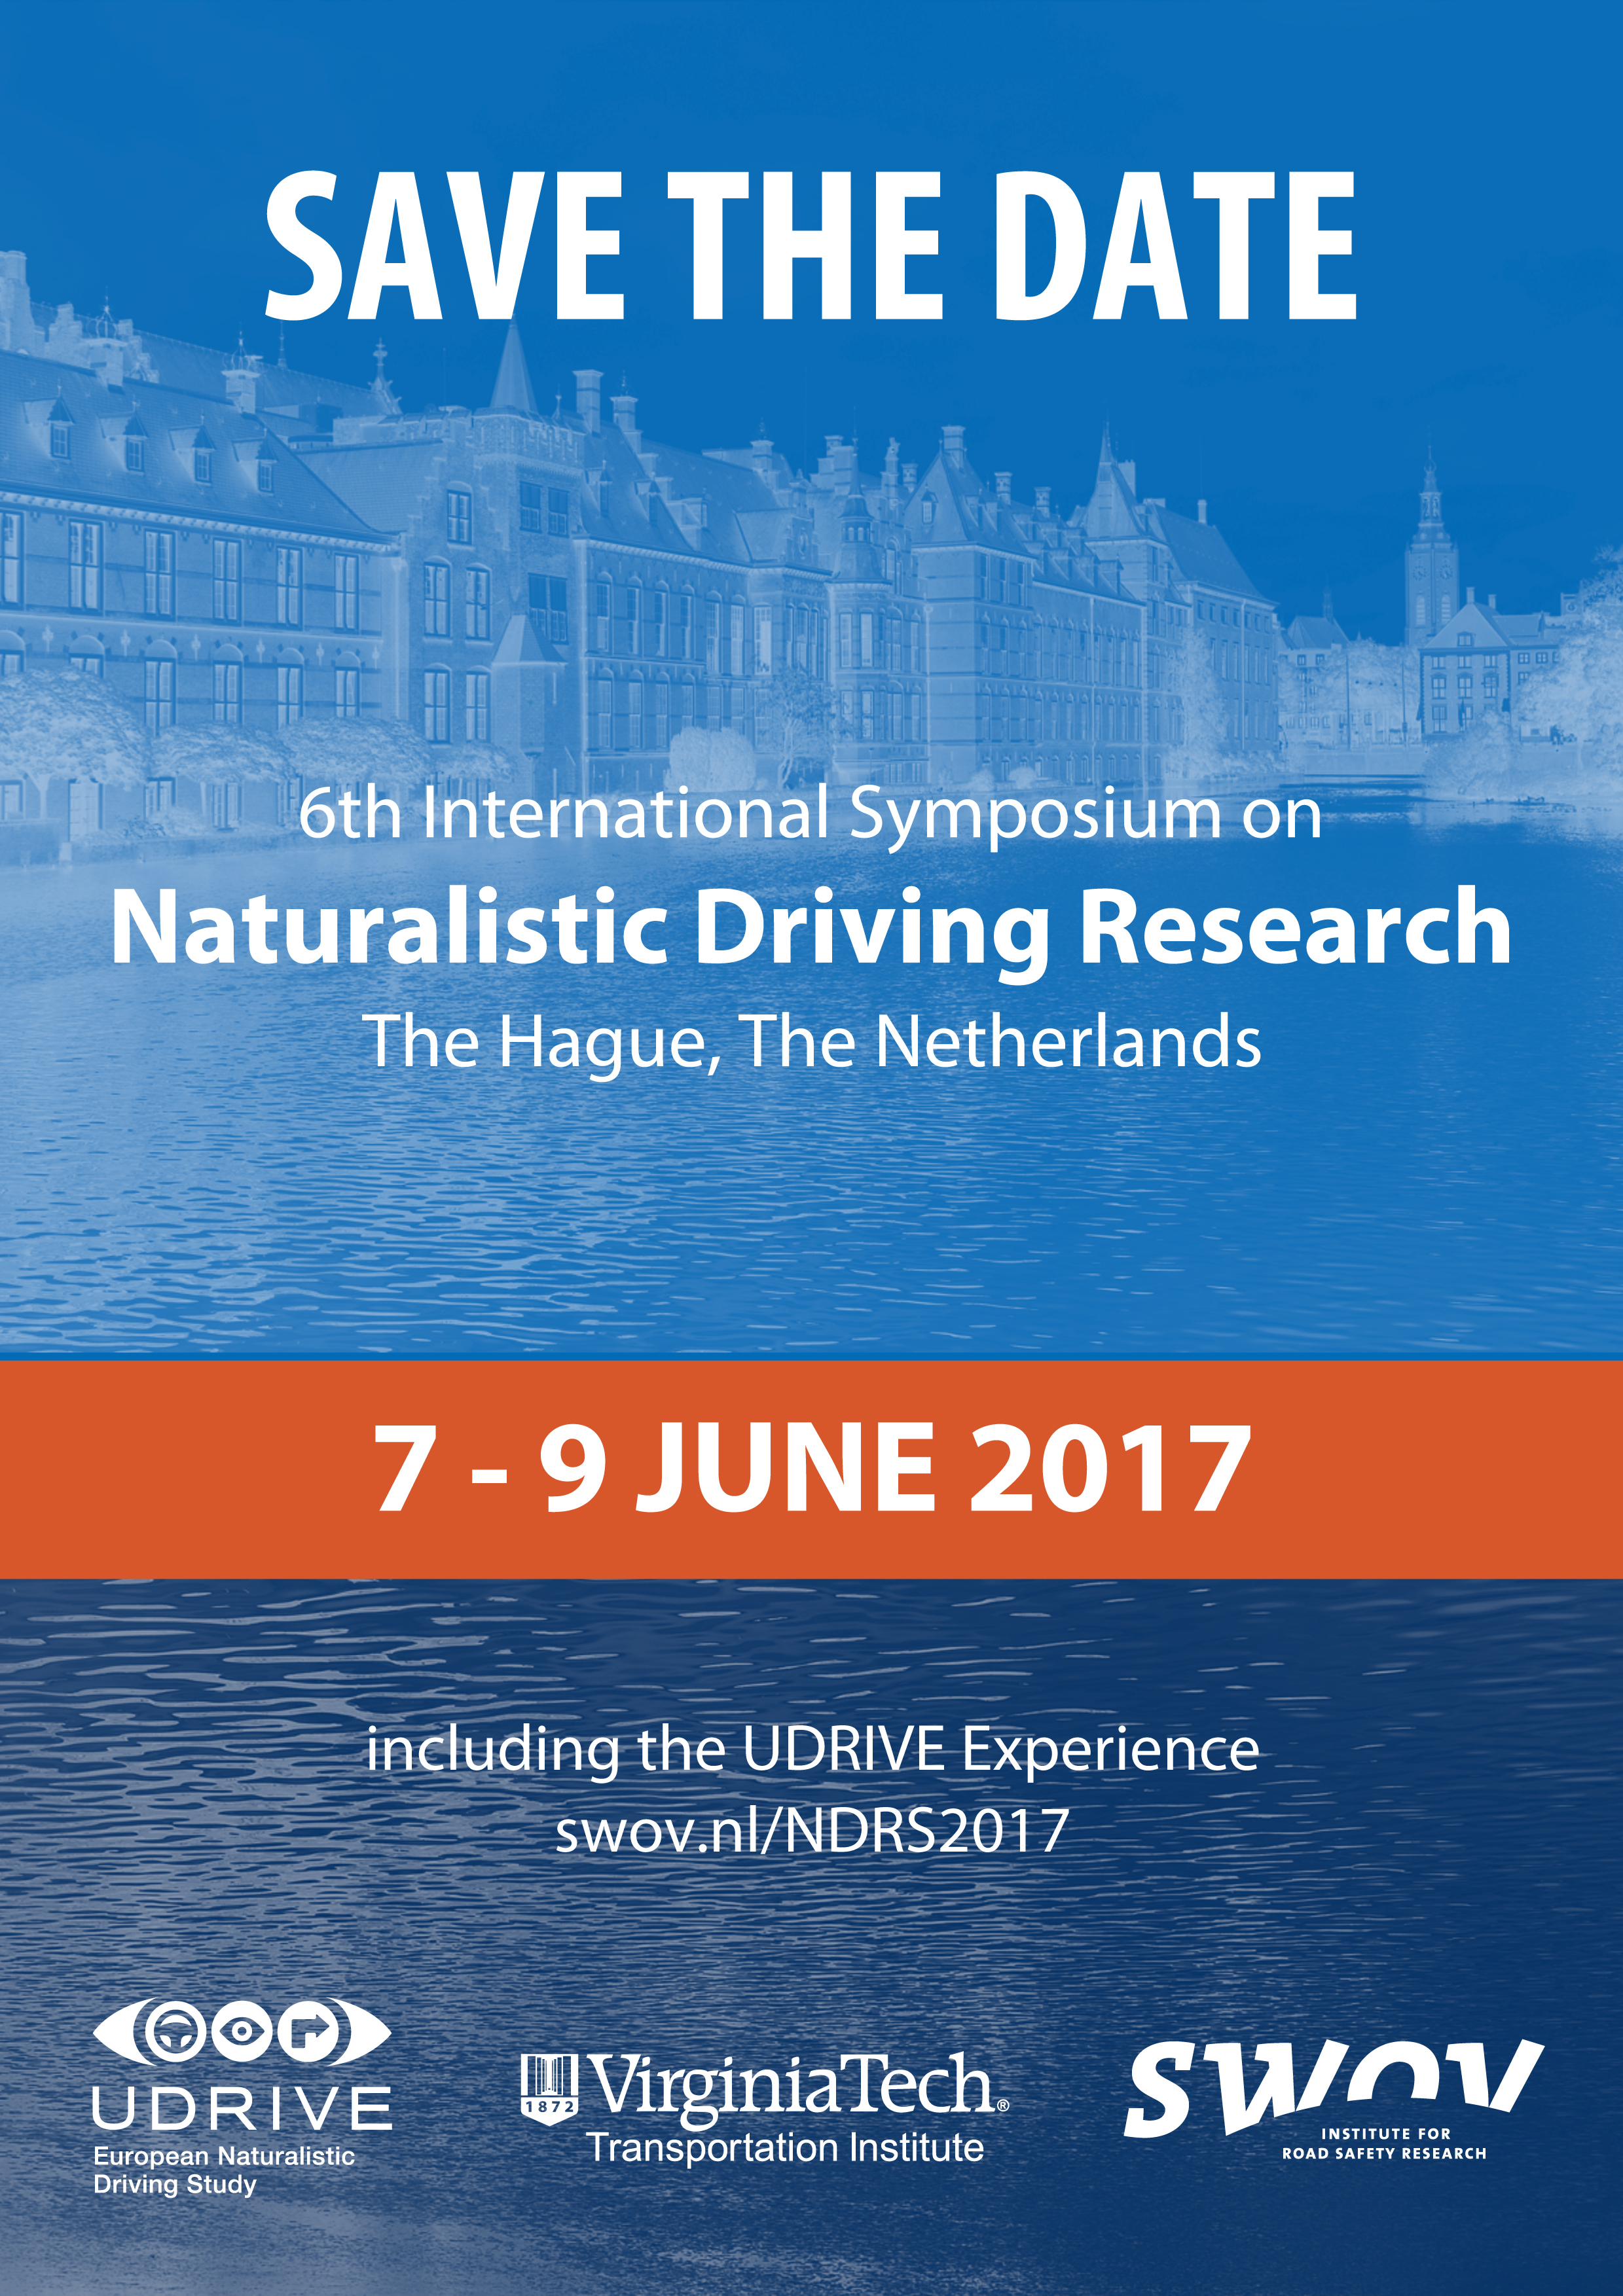 NDRS 2017 Call for abstracts is now open!